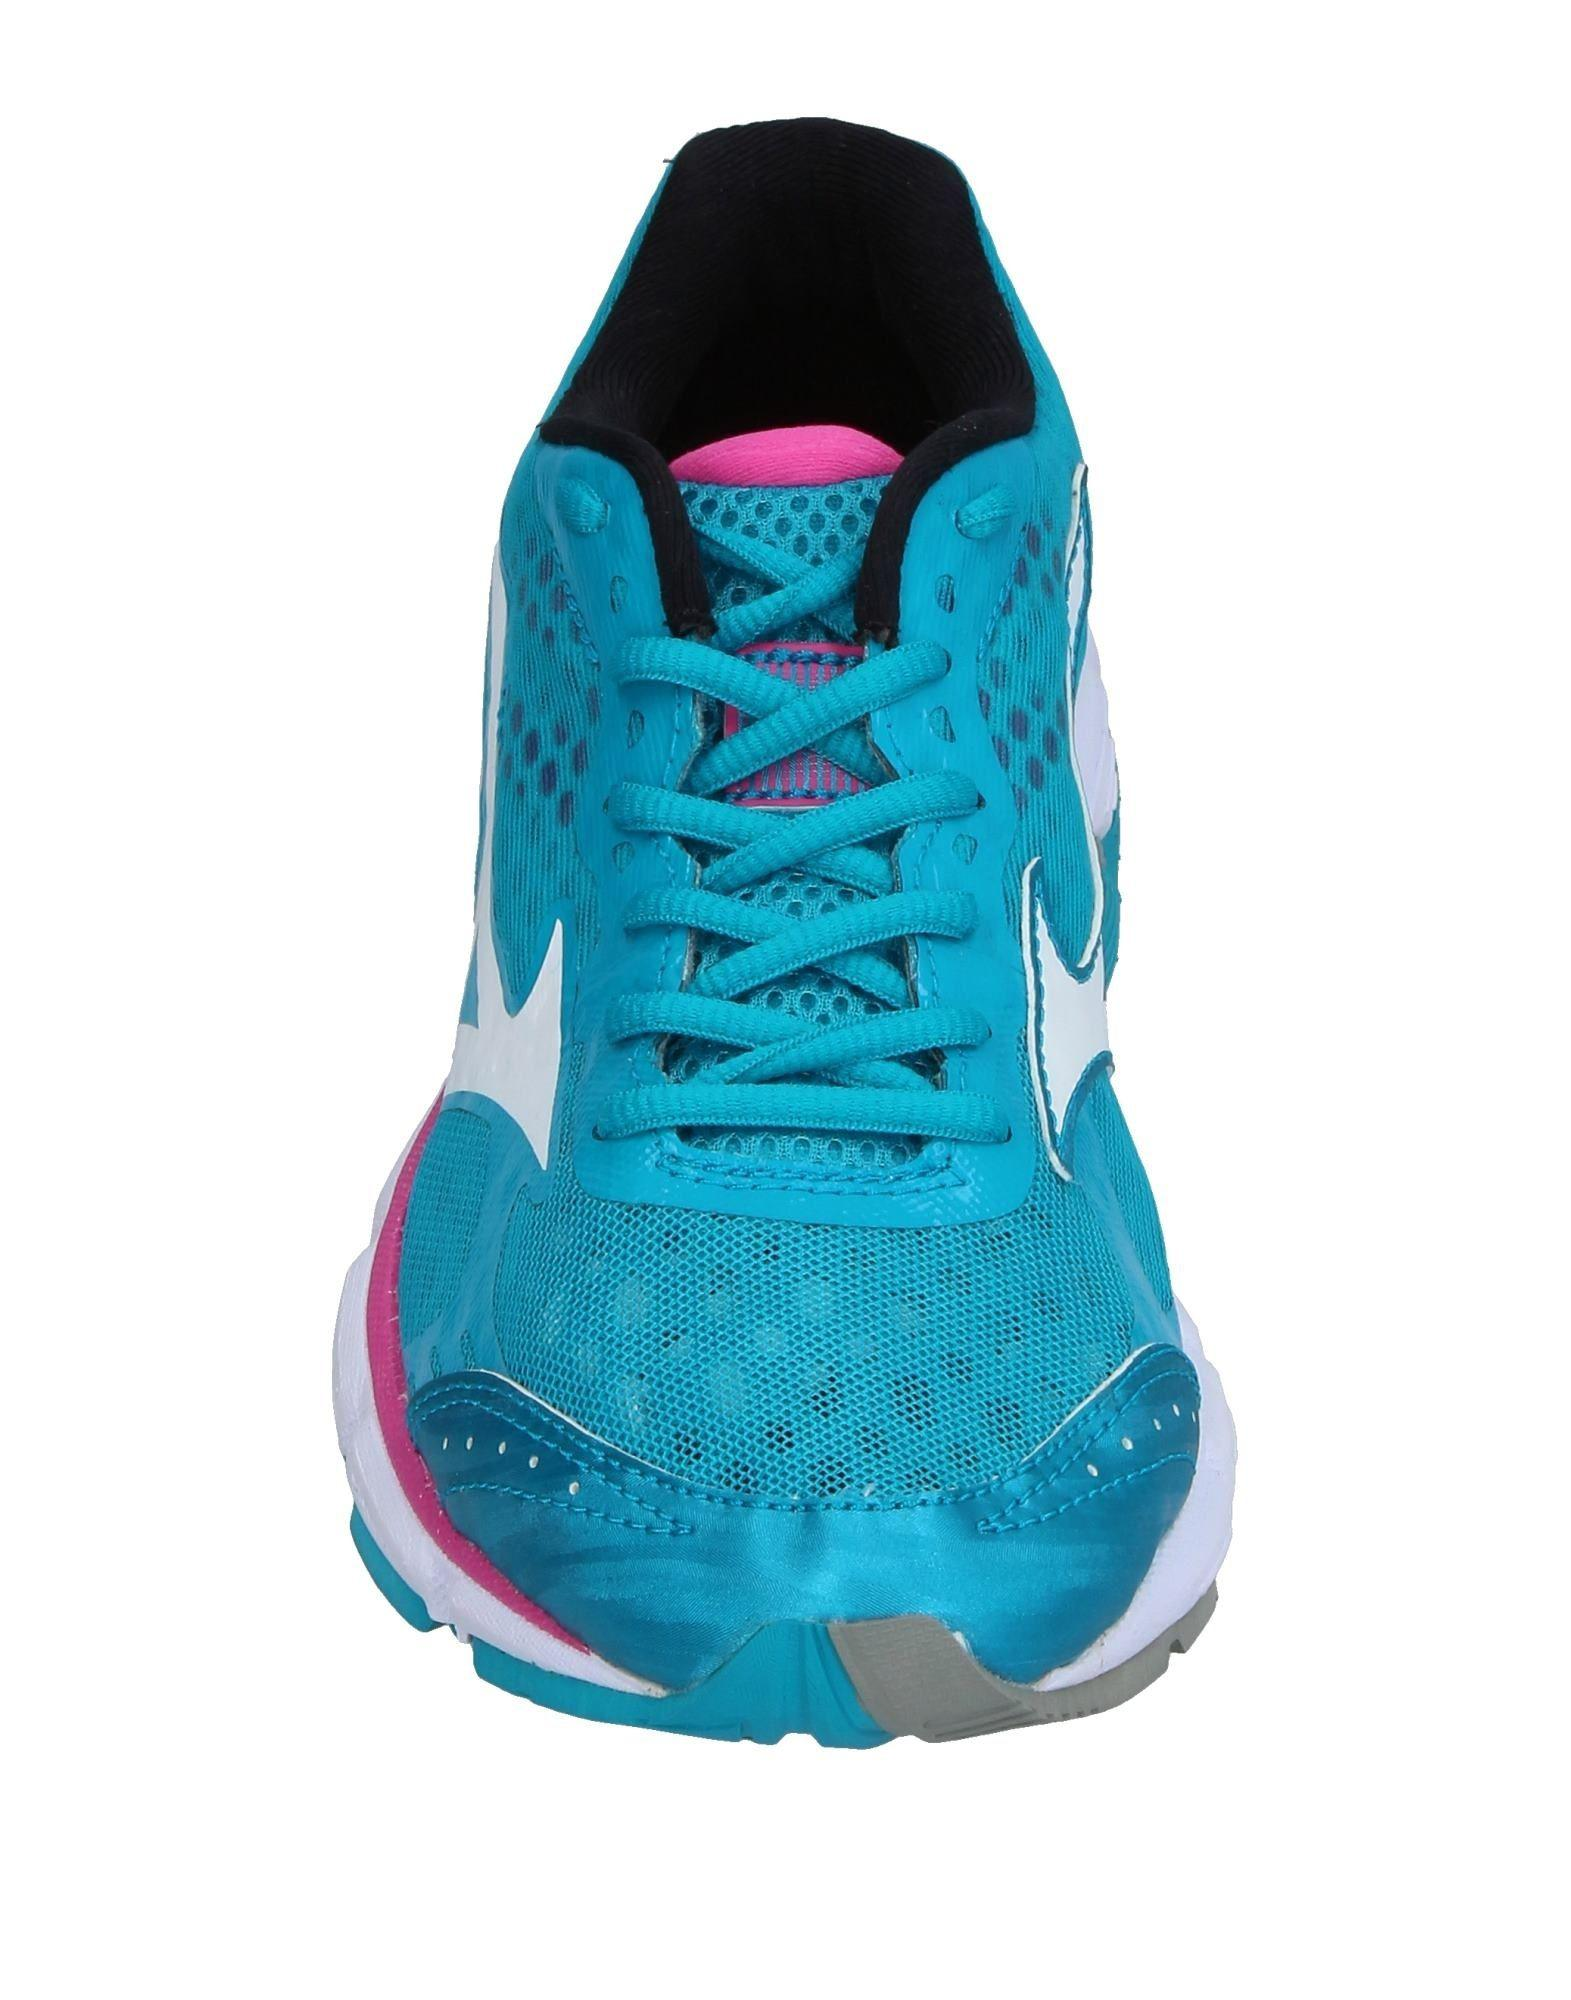 Mizuno Rubber Low-tops & Sneakers in Turquoise (Blue)